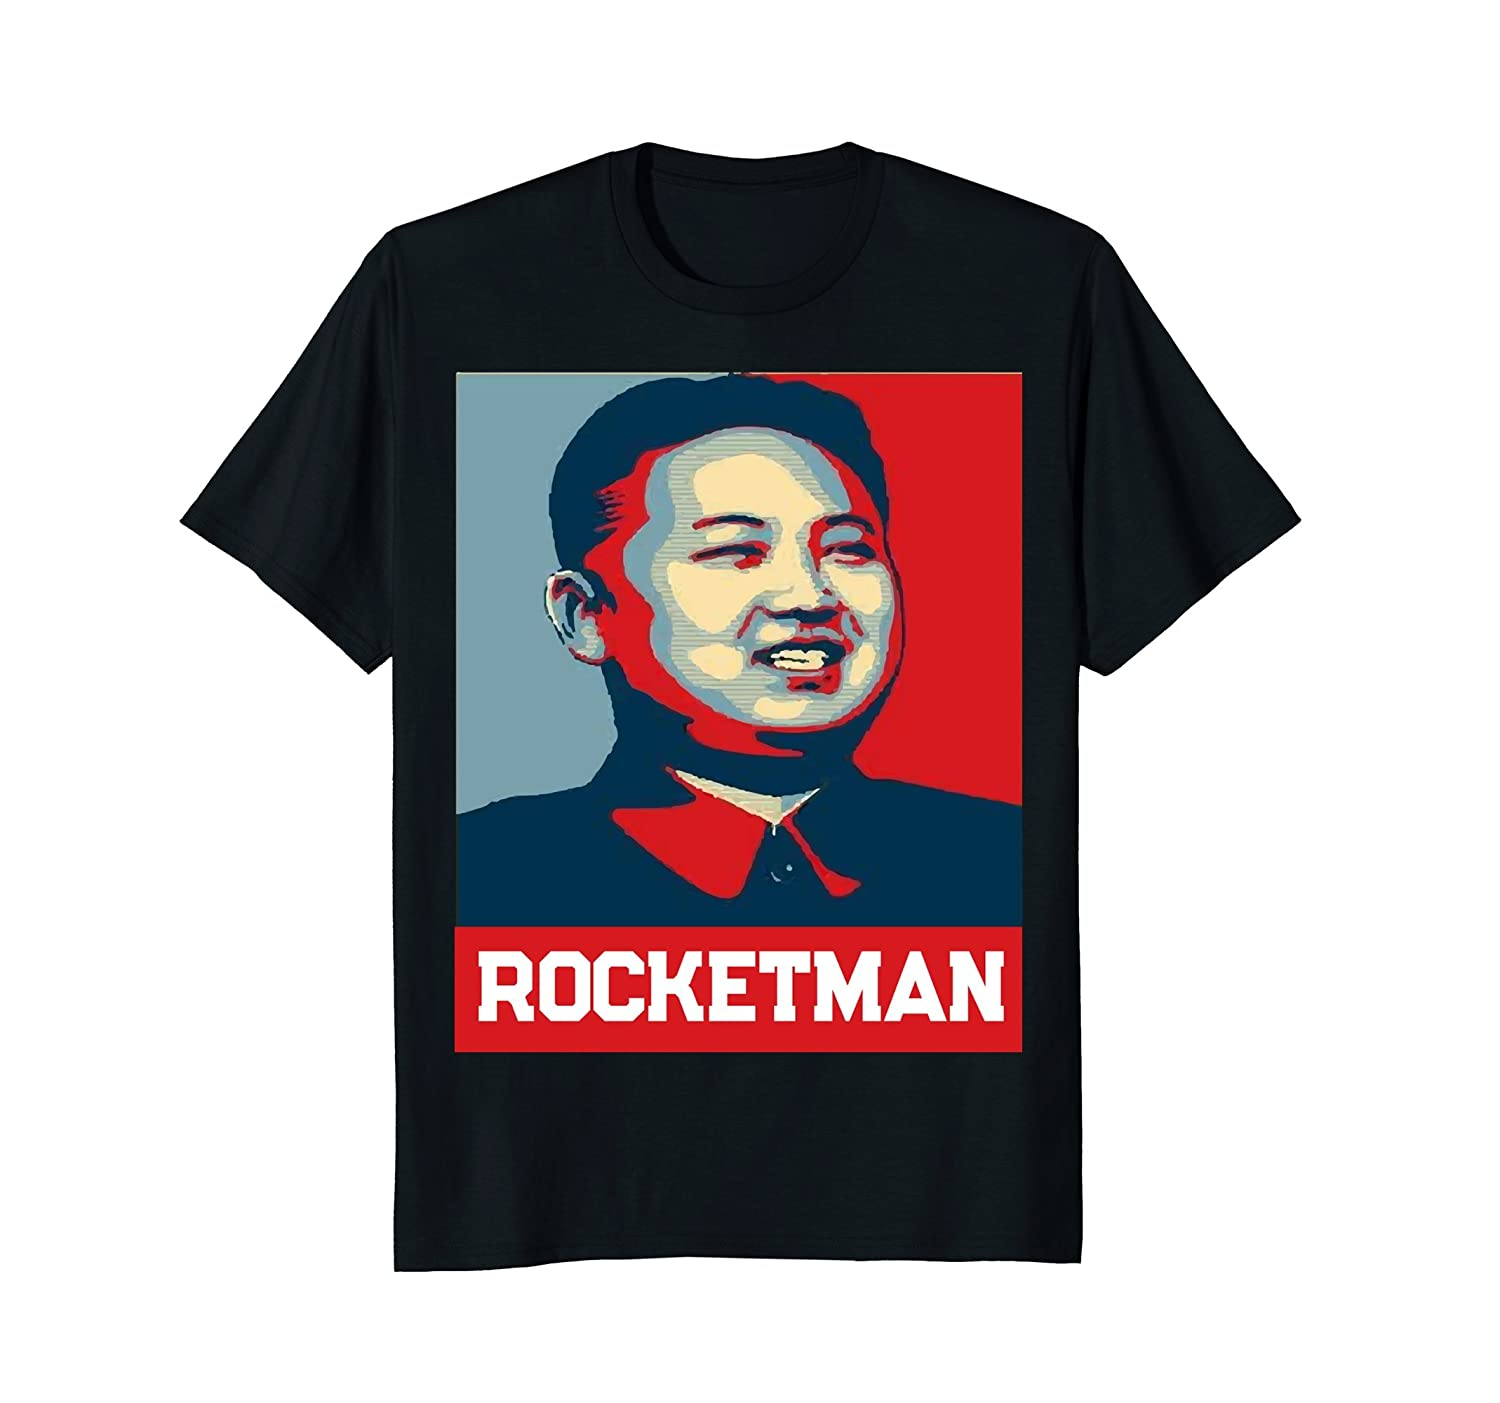 865d4d1e7 Imported Machine wash cold with like colors, dry low heat. Rocket Man Kim  Jong Un, North Korea's Favorite Dictator! Retro-style ...